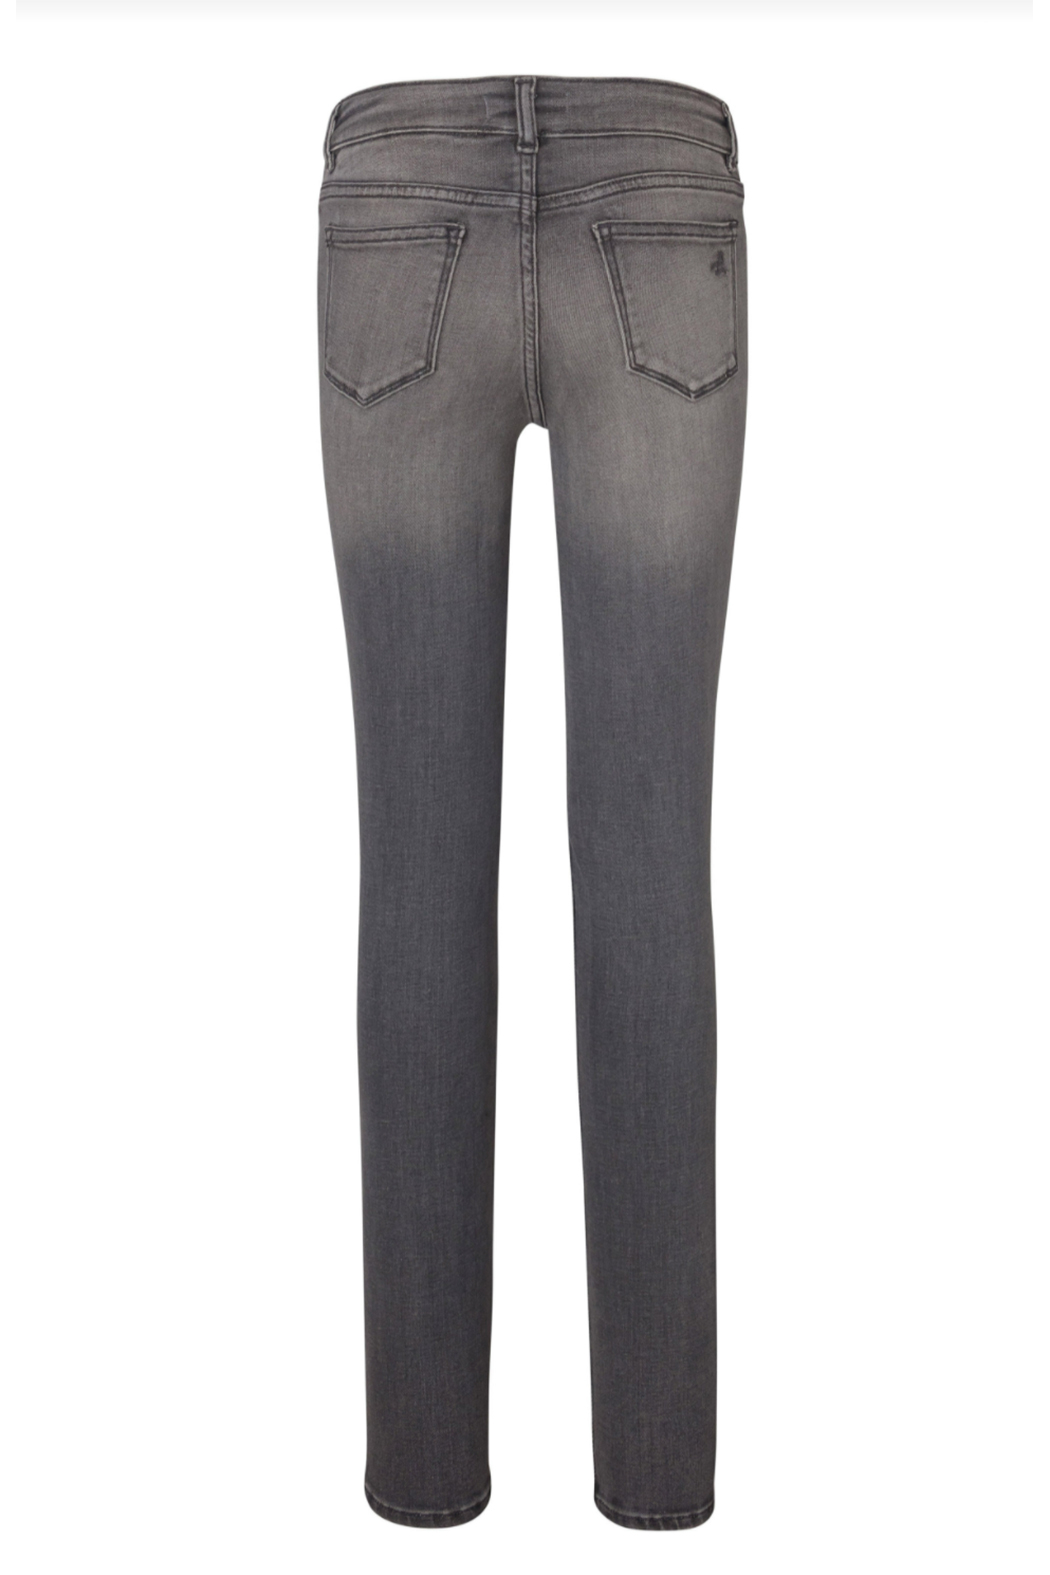 DL1961 Chloe Skinny Youth Jeans - Drizzle - Front Full Image